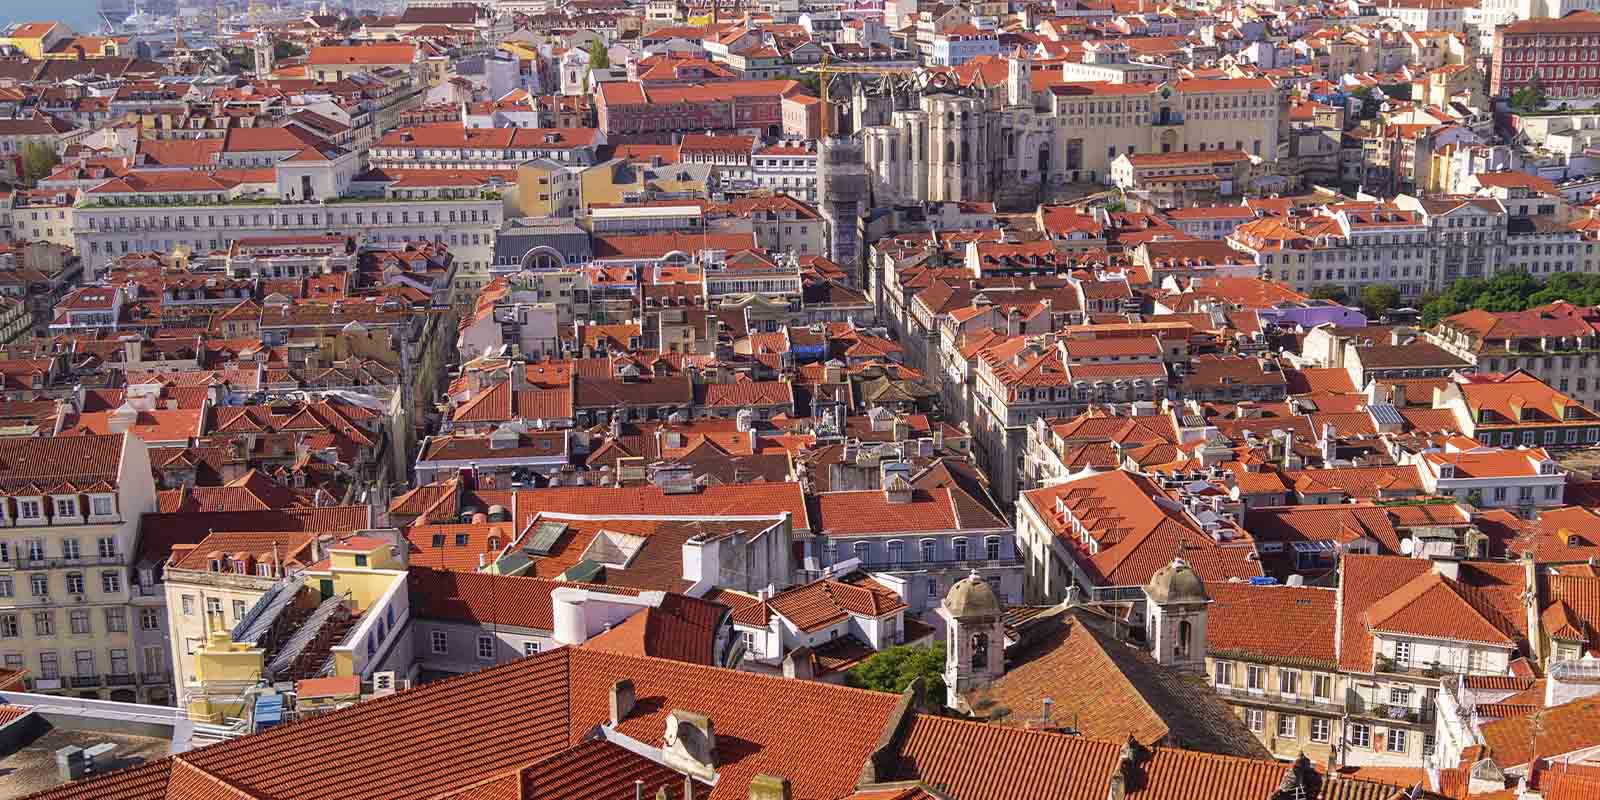 Aerial view of Lisbon.